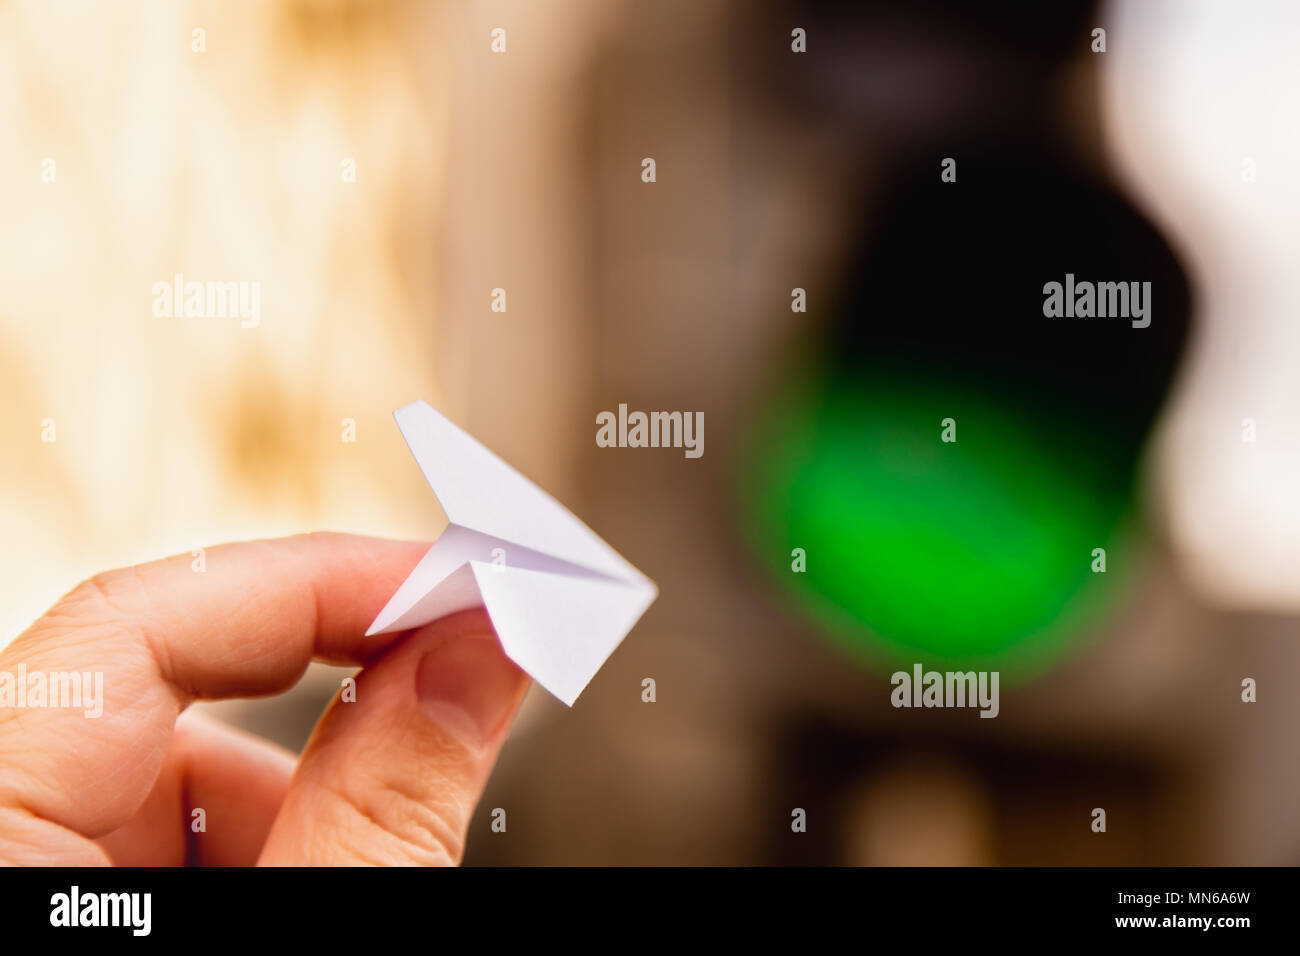 One Small Paper Airplane In Hand Against A Traffic Light Background Diagrams With Glowing Green Signal Permission To Fly Takeoff Is Approved And Allowed H